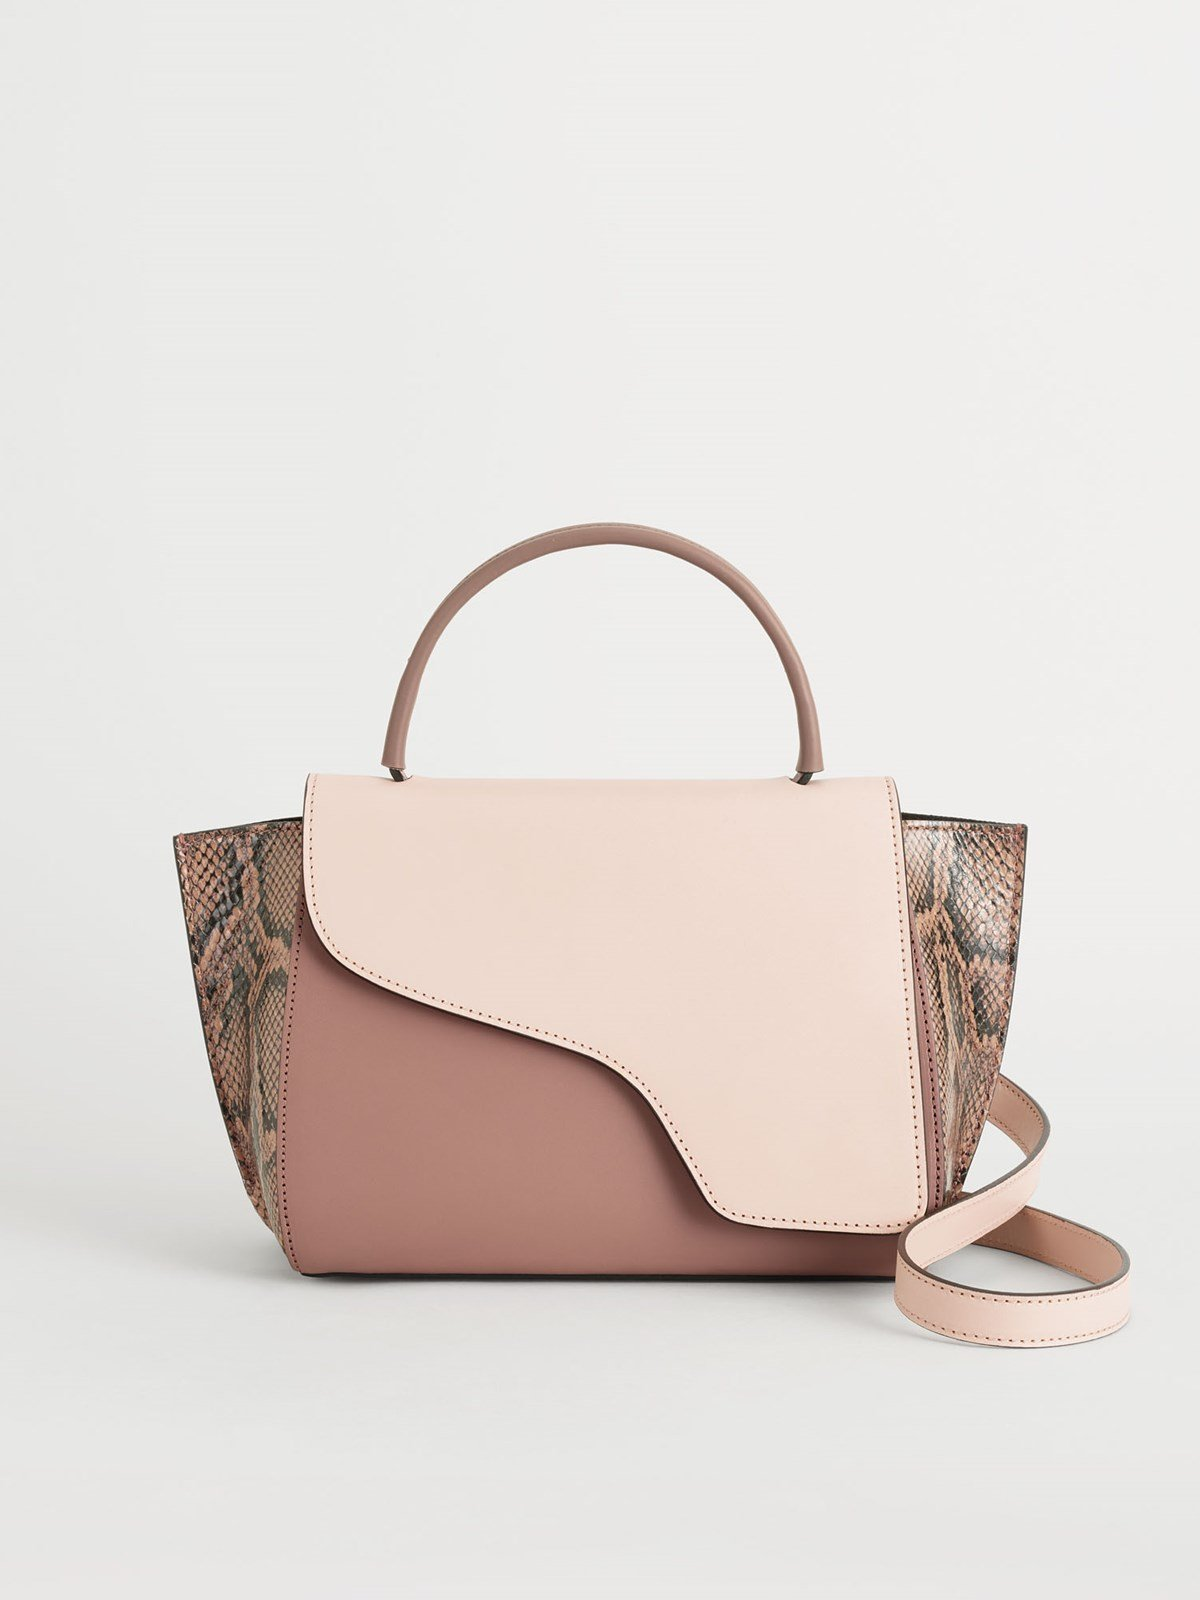 Arezzo Dusty Pink/Khaki Rose/Brown Vacchetta/Printed Snake